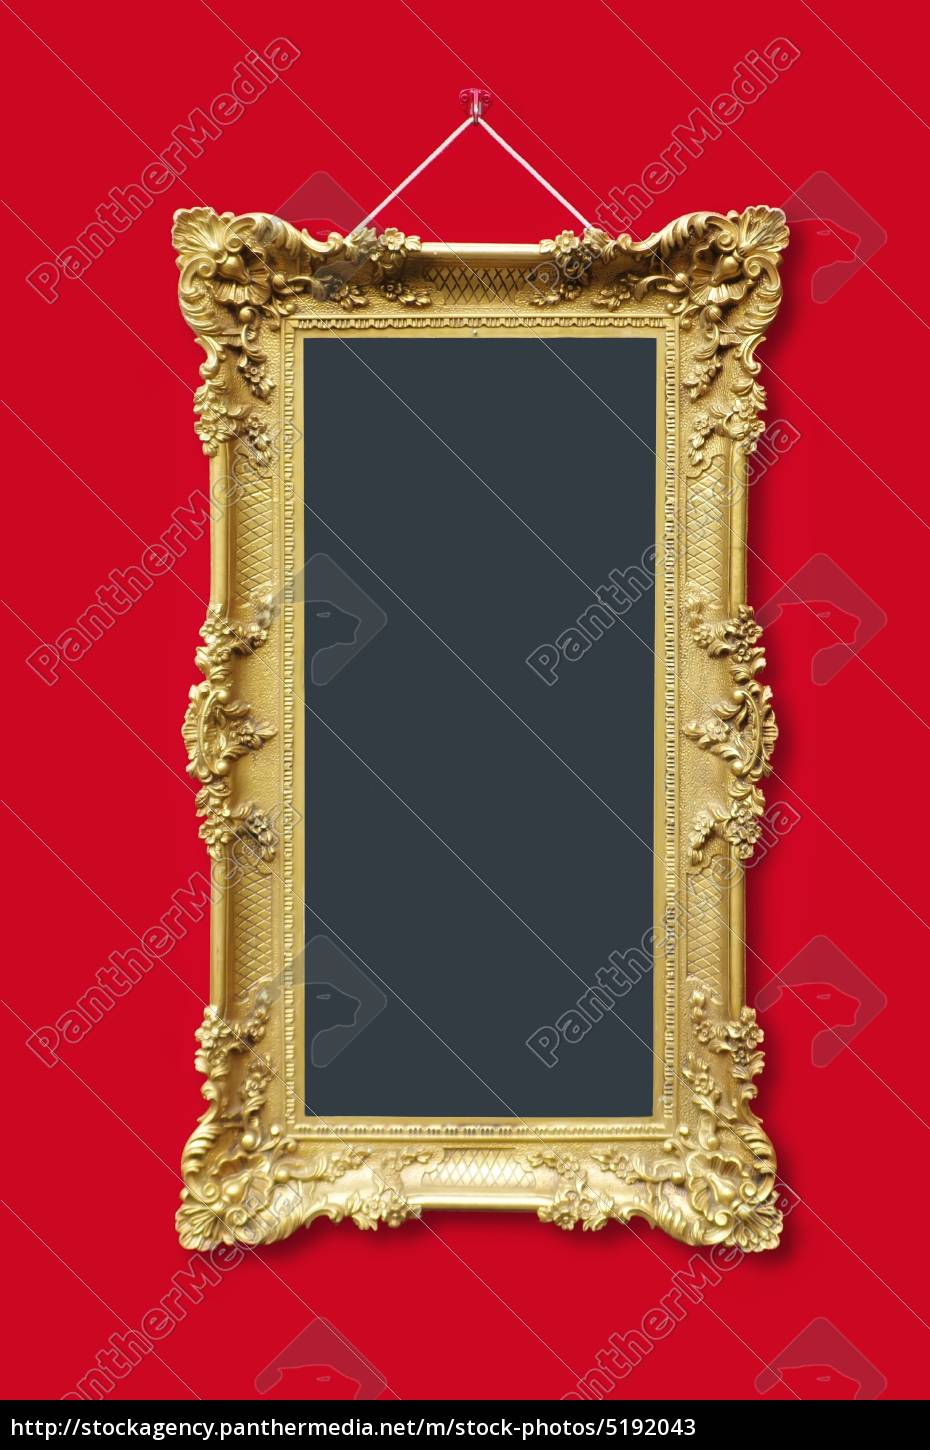 picture, frames, in, gold, with, ornaments - 5192043